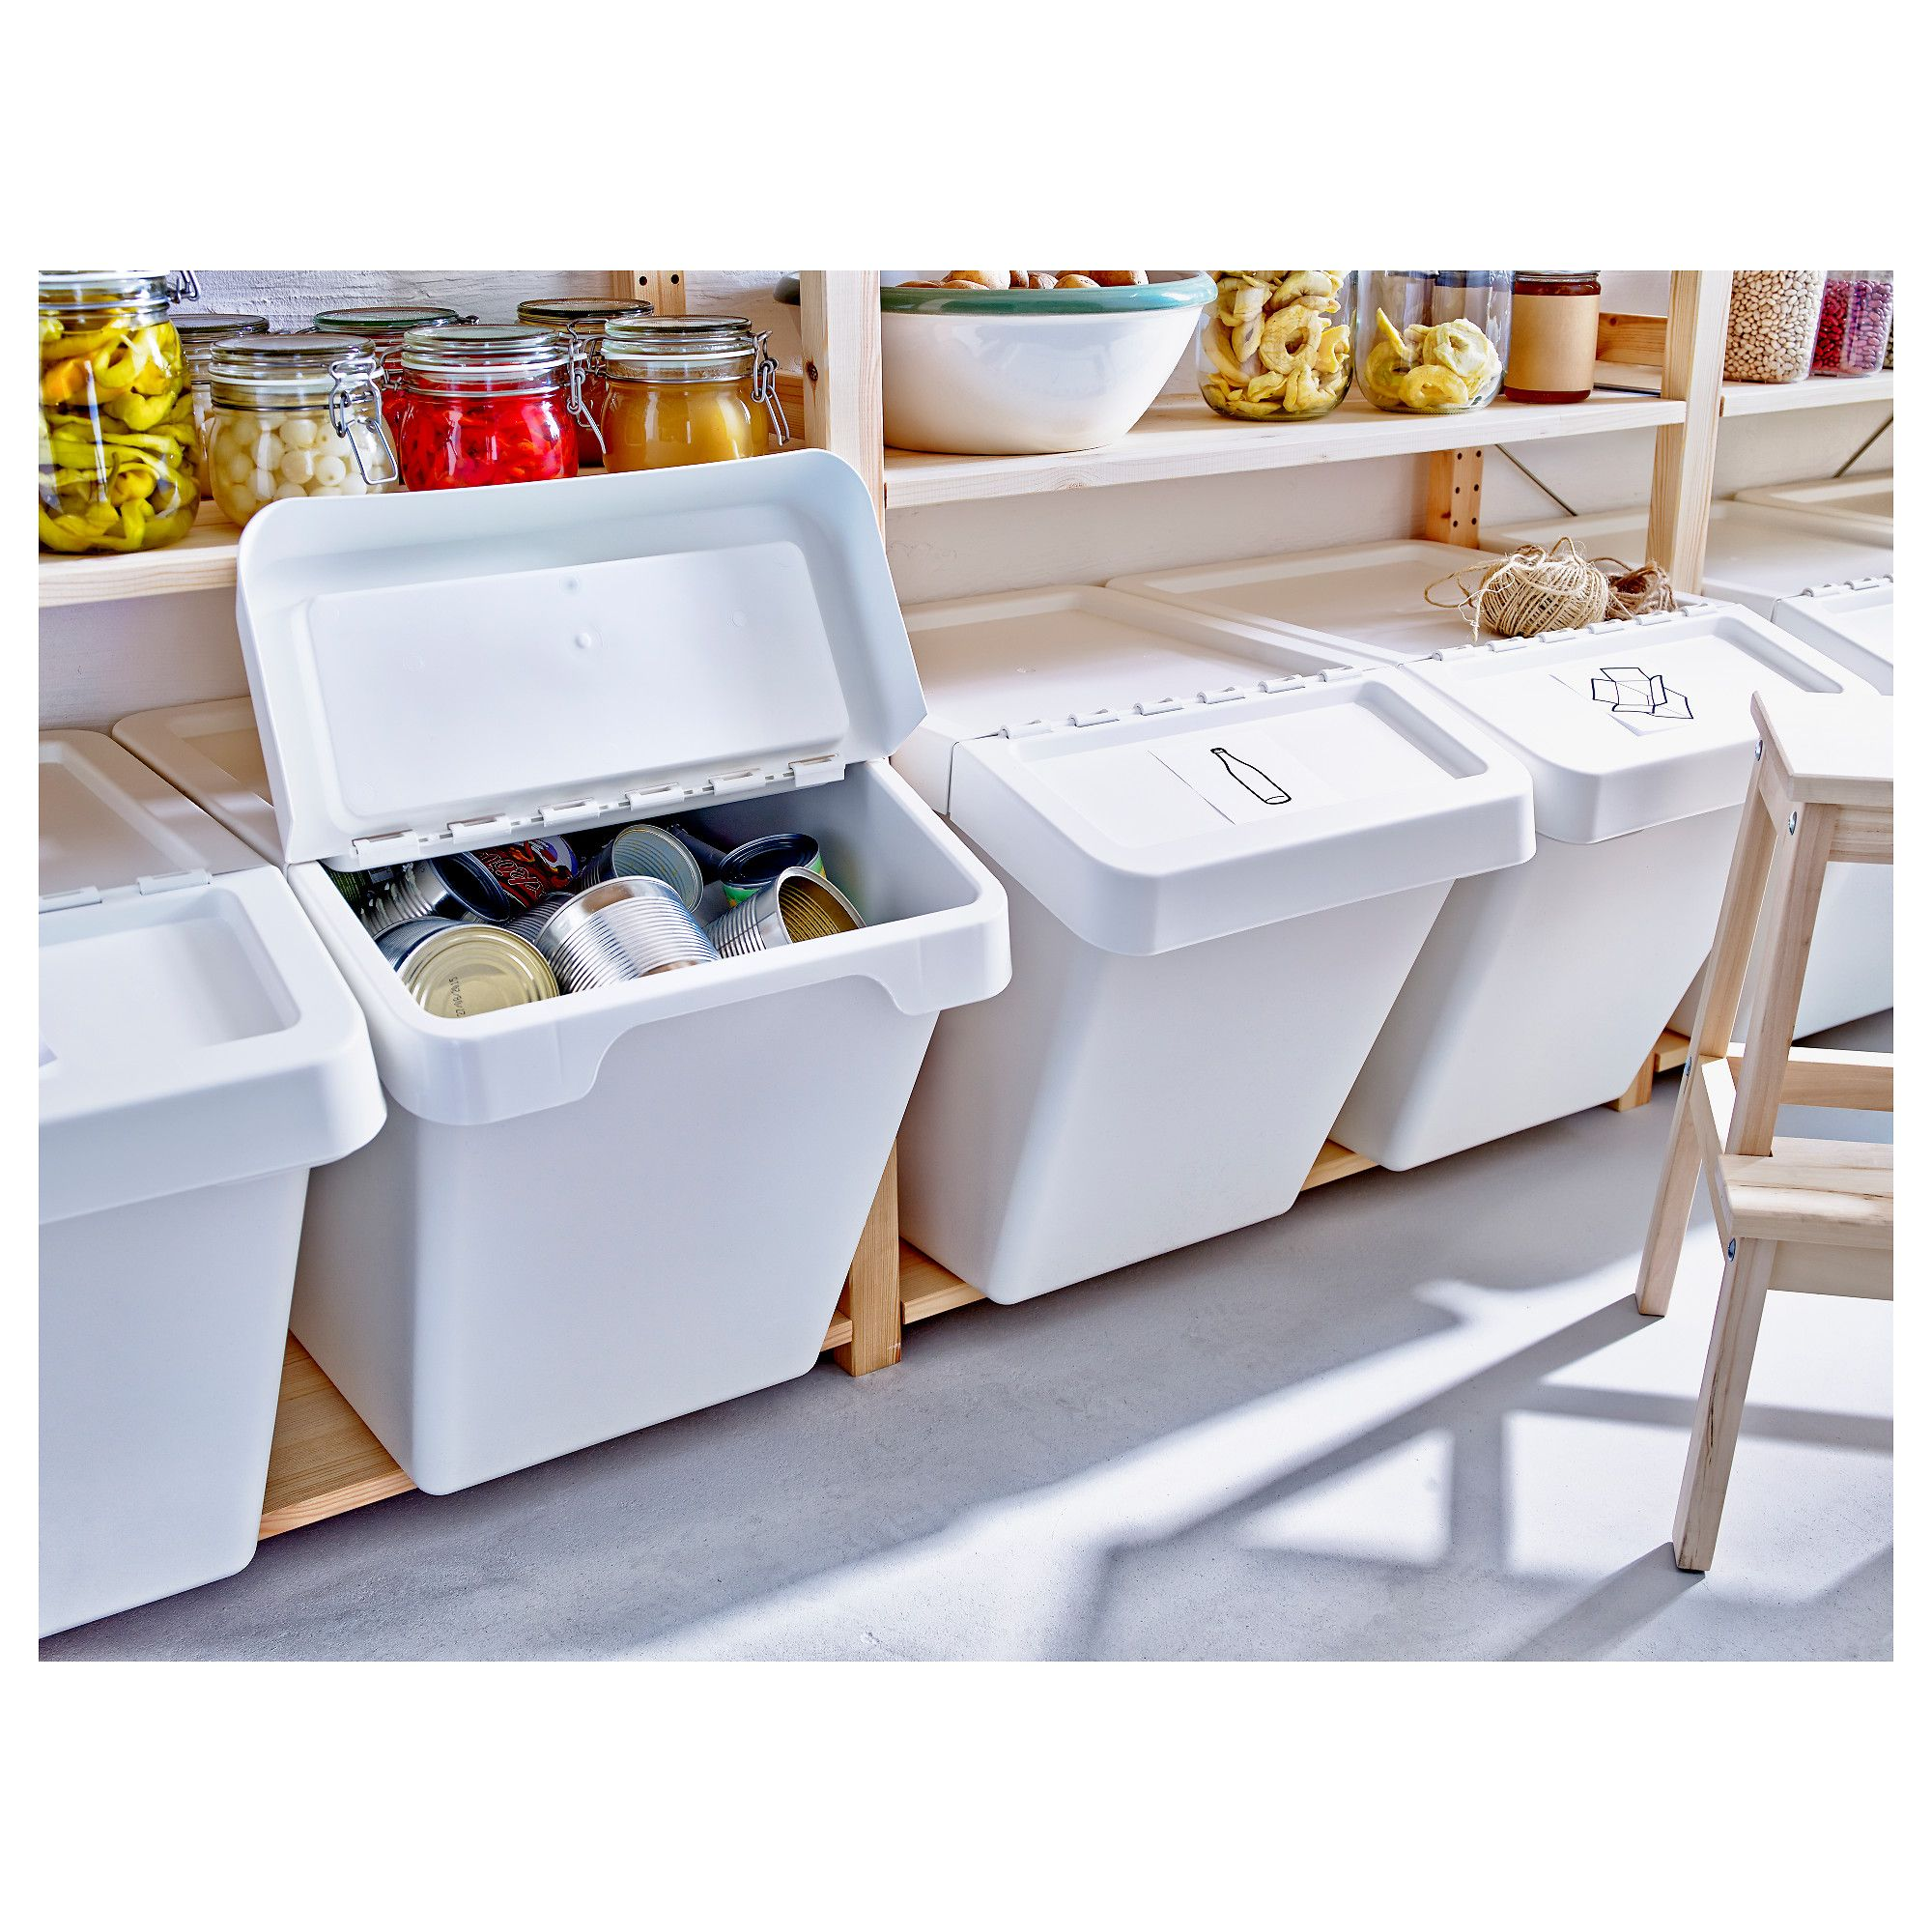 Sortera Waste Sorting Bin With Lid White Rangement